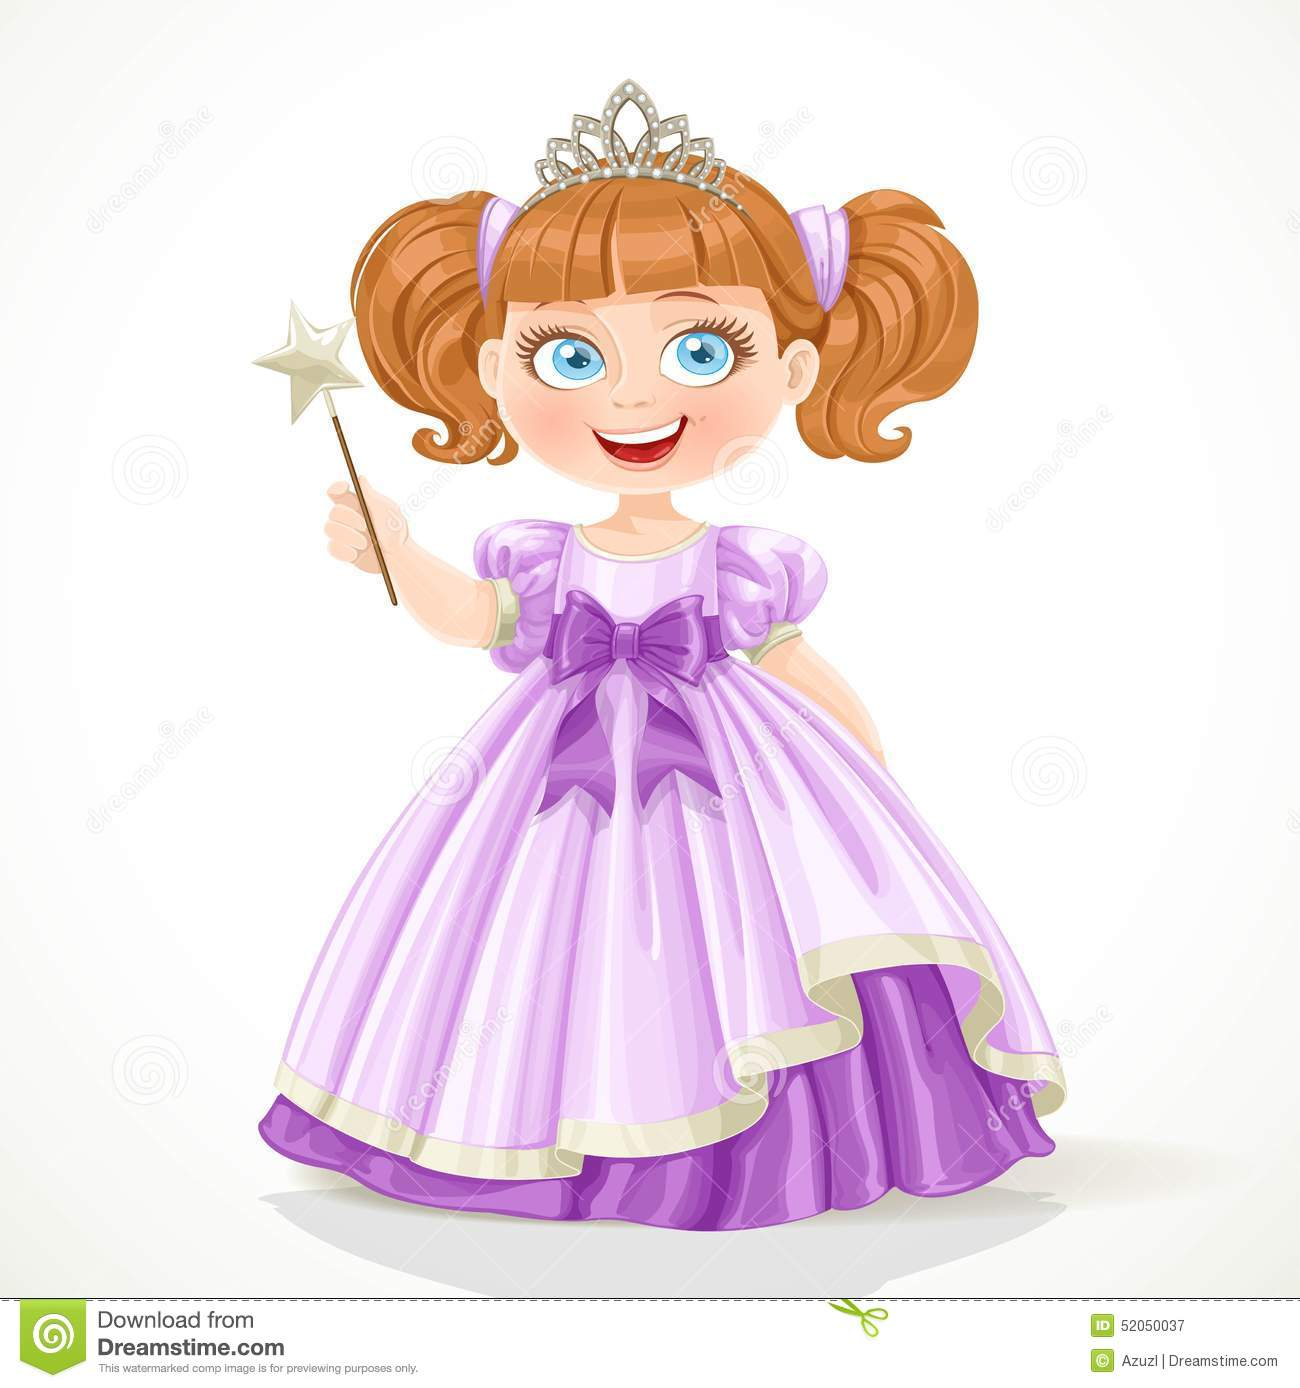 Wallpaper Cute Little Girl Cartoon Little Princess In Purple Dress And Tiara Holding Magic